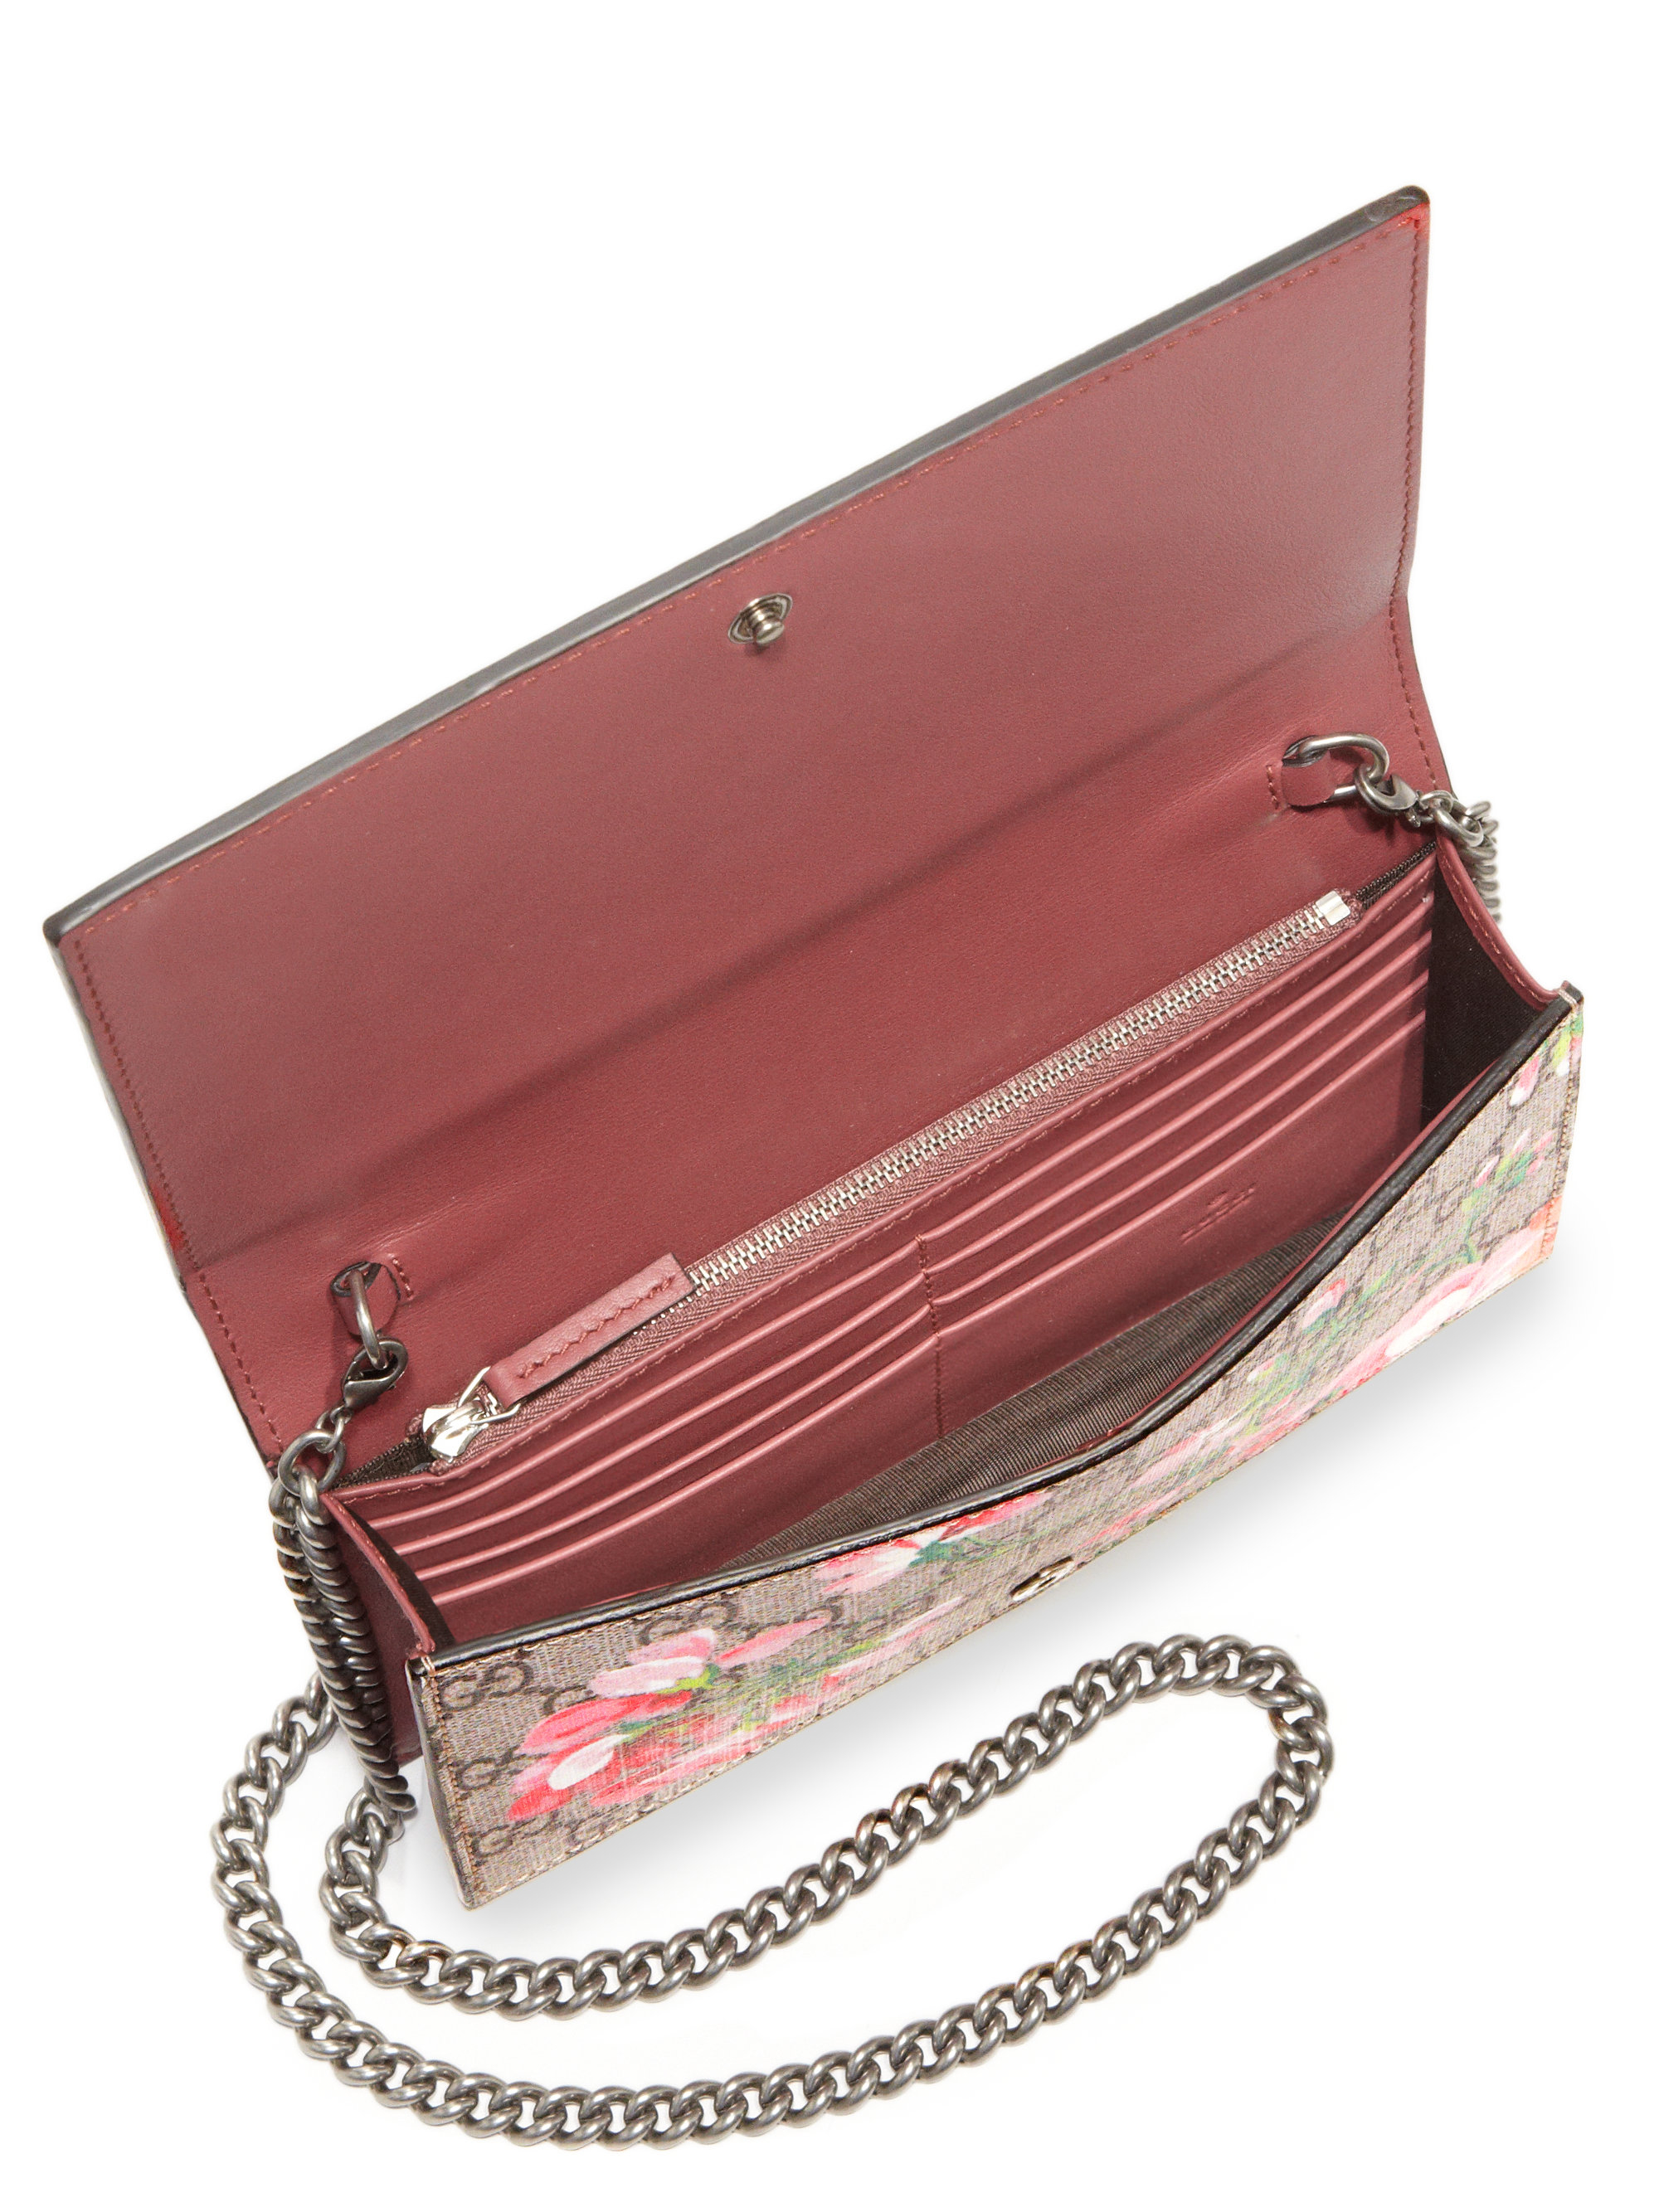 b1b4227ed61 Lyst Gucci Gg Blooms Supreme Chain Wallet. Gucci Wallet Chain Purse Best  Image Ccdbb